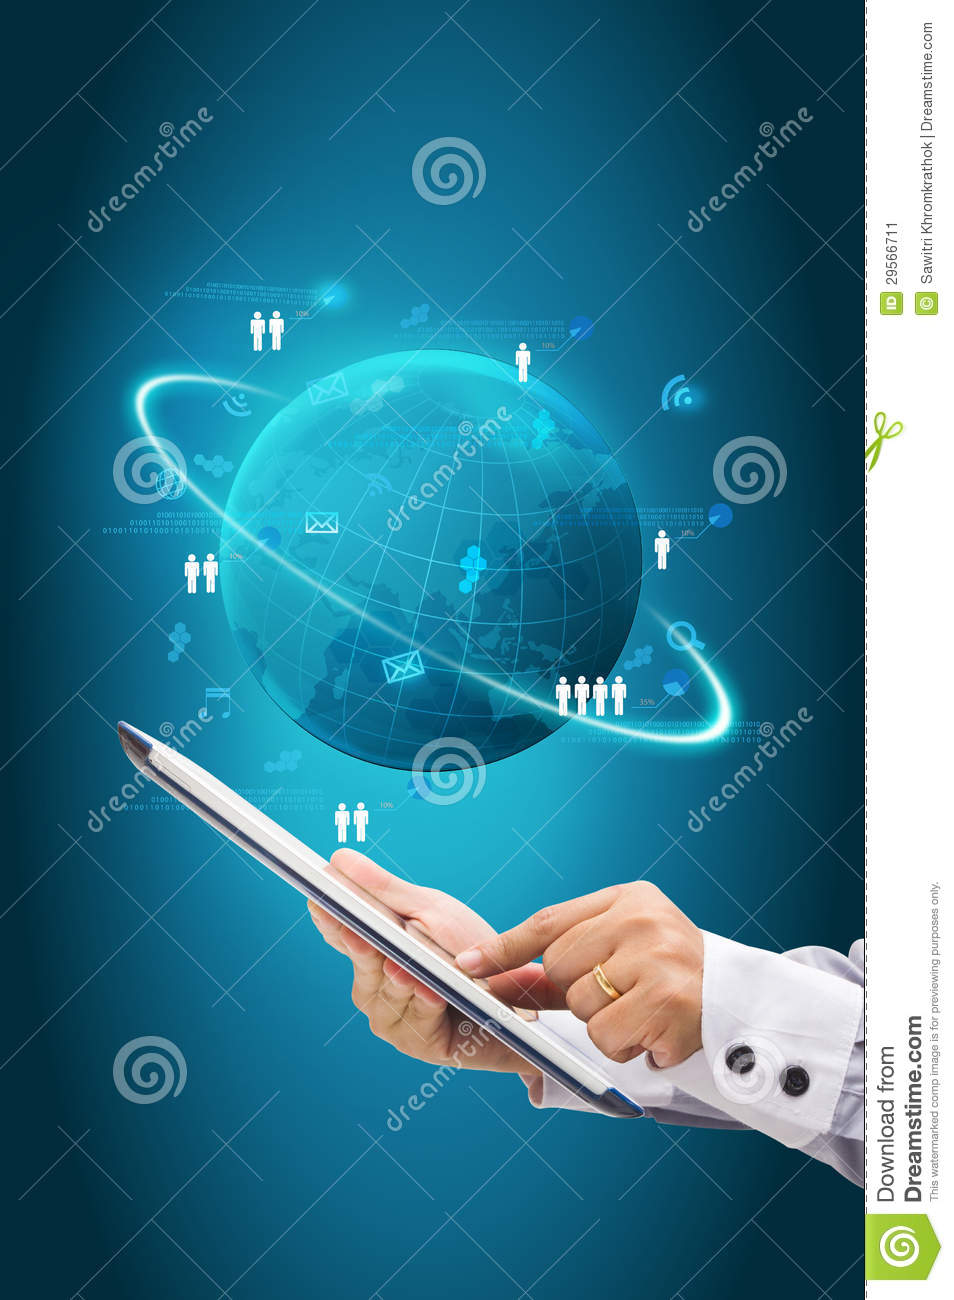 Information Technology Business Concept  Network Process Diagram Stock Illustration